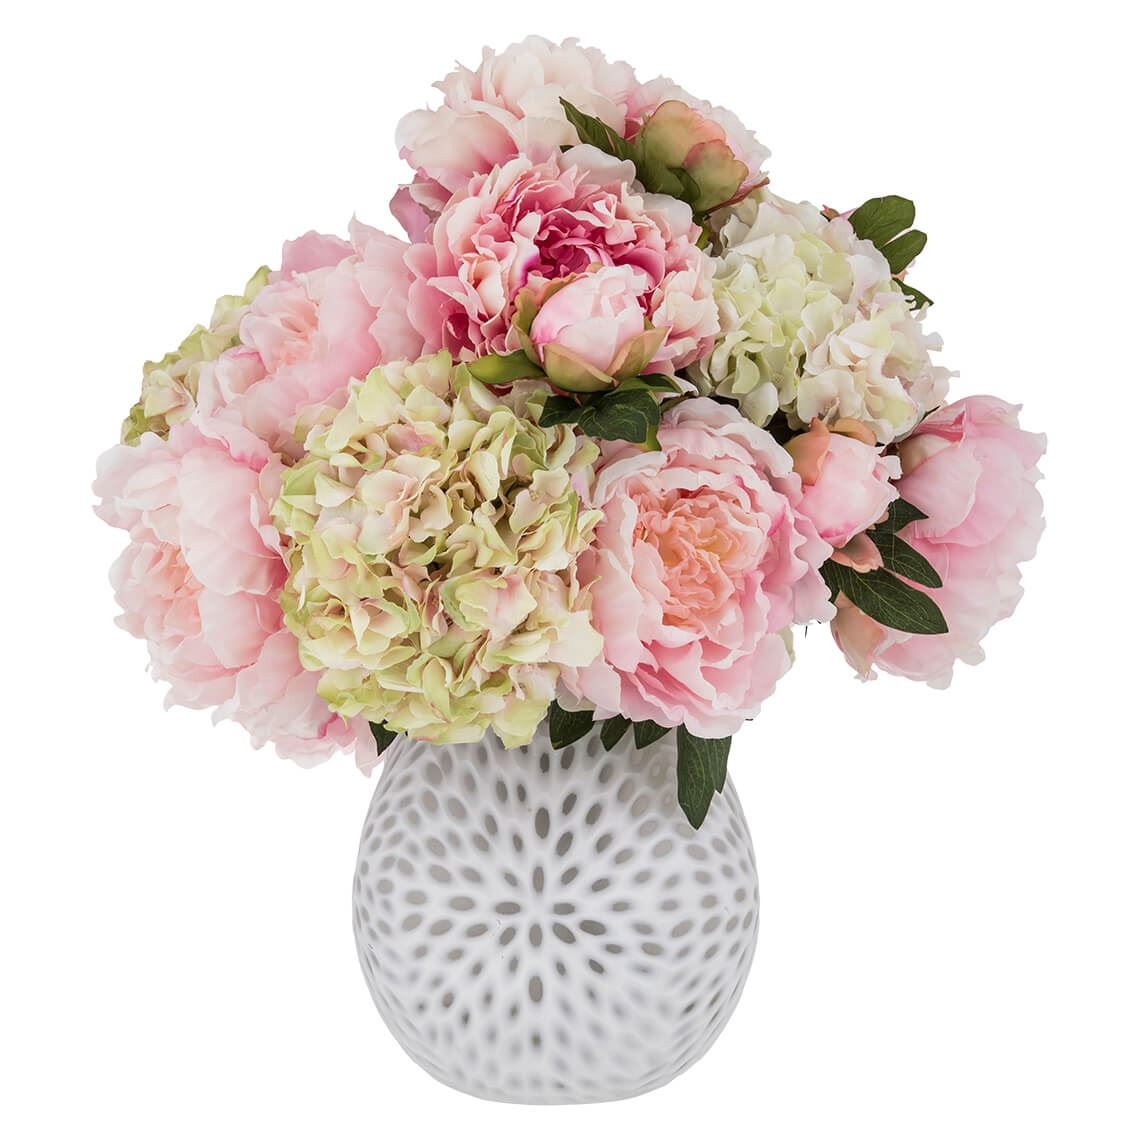 Hydrangea Mix Size W 46cm x D 46cm x H 53cm in Pink Freedom by Freedom, a Plants for sale on Style Sourcebook